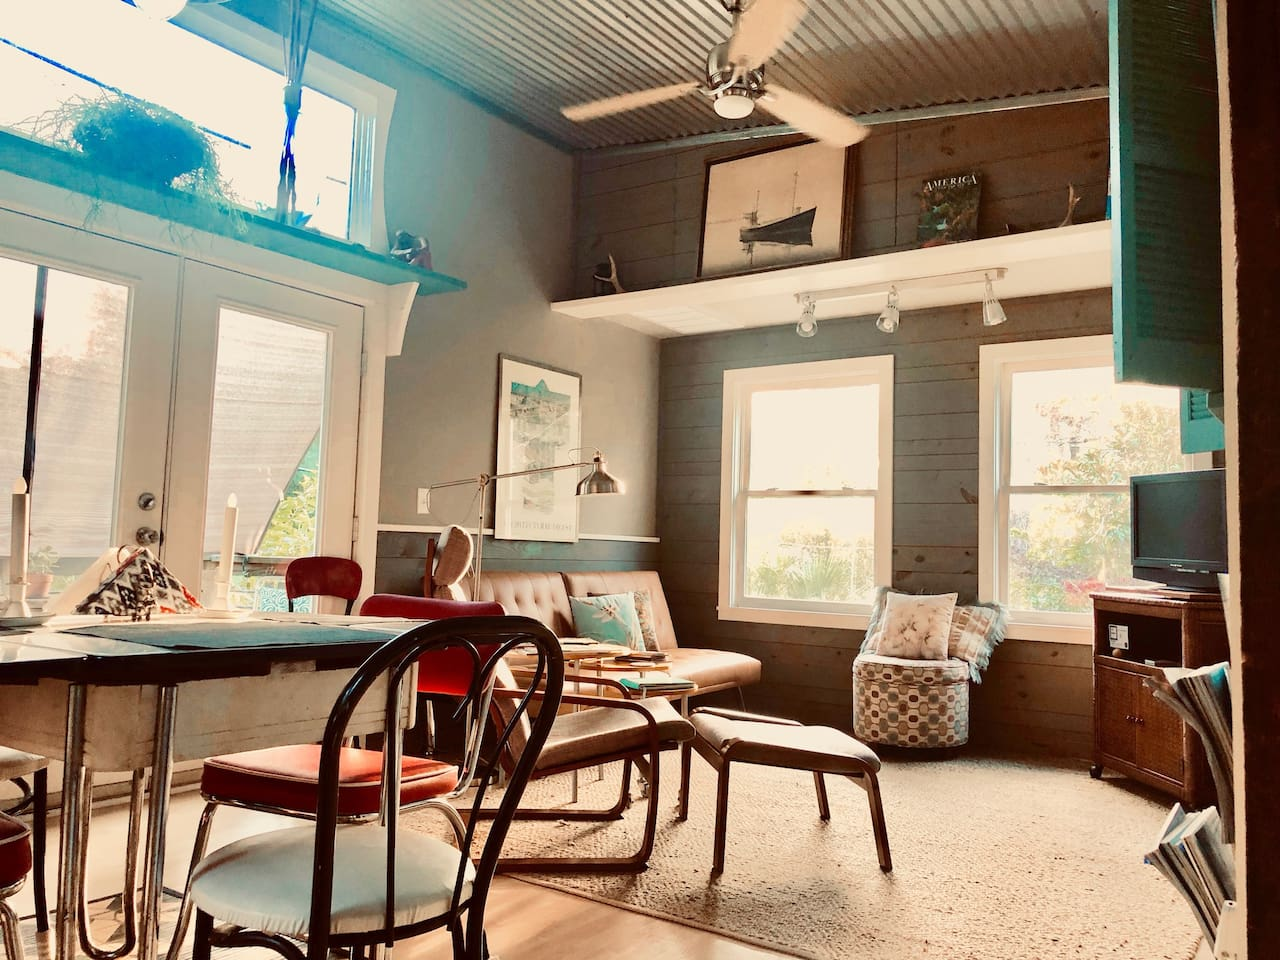 Peaceful Carriage House ..with carefully selected reclaimed and repurposed decor.